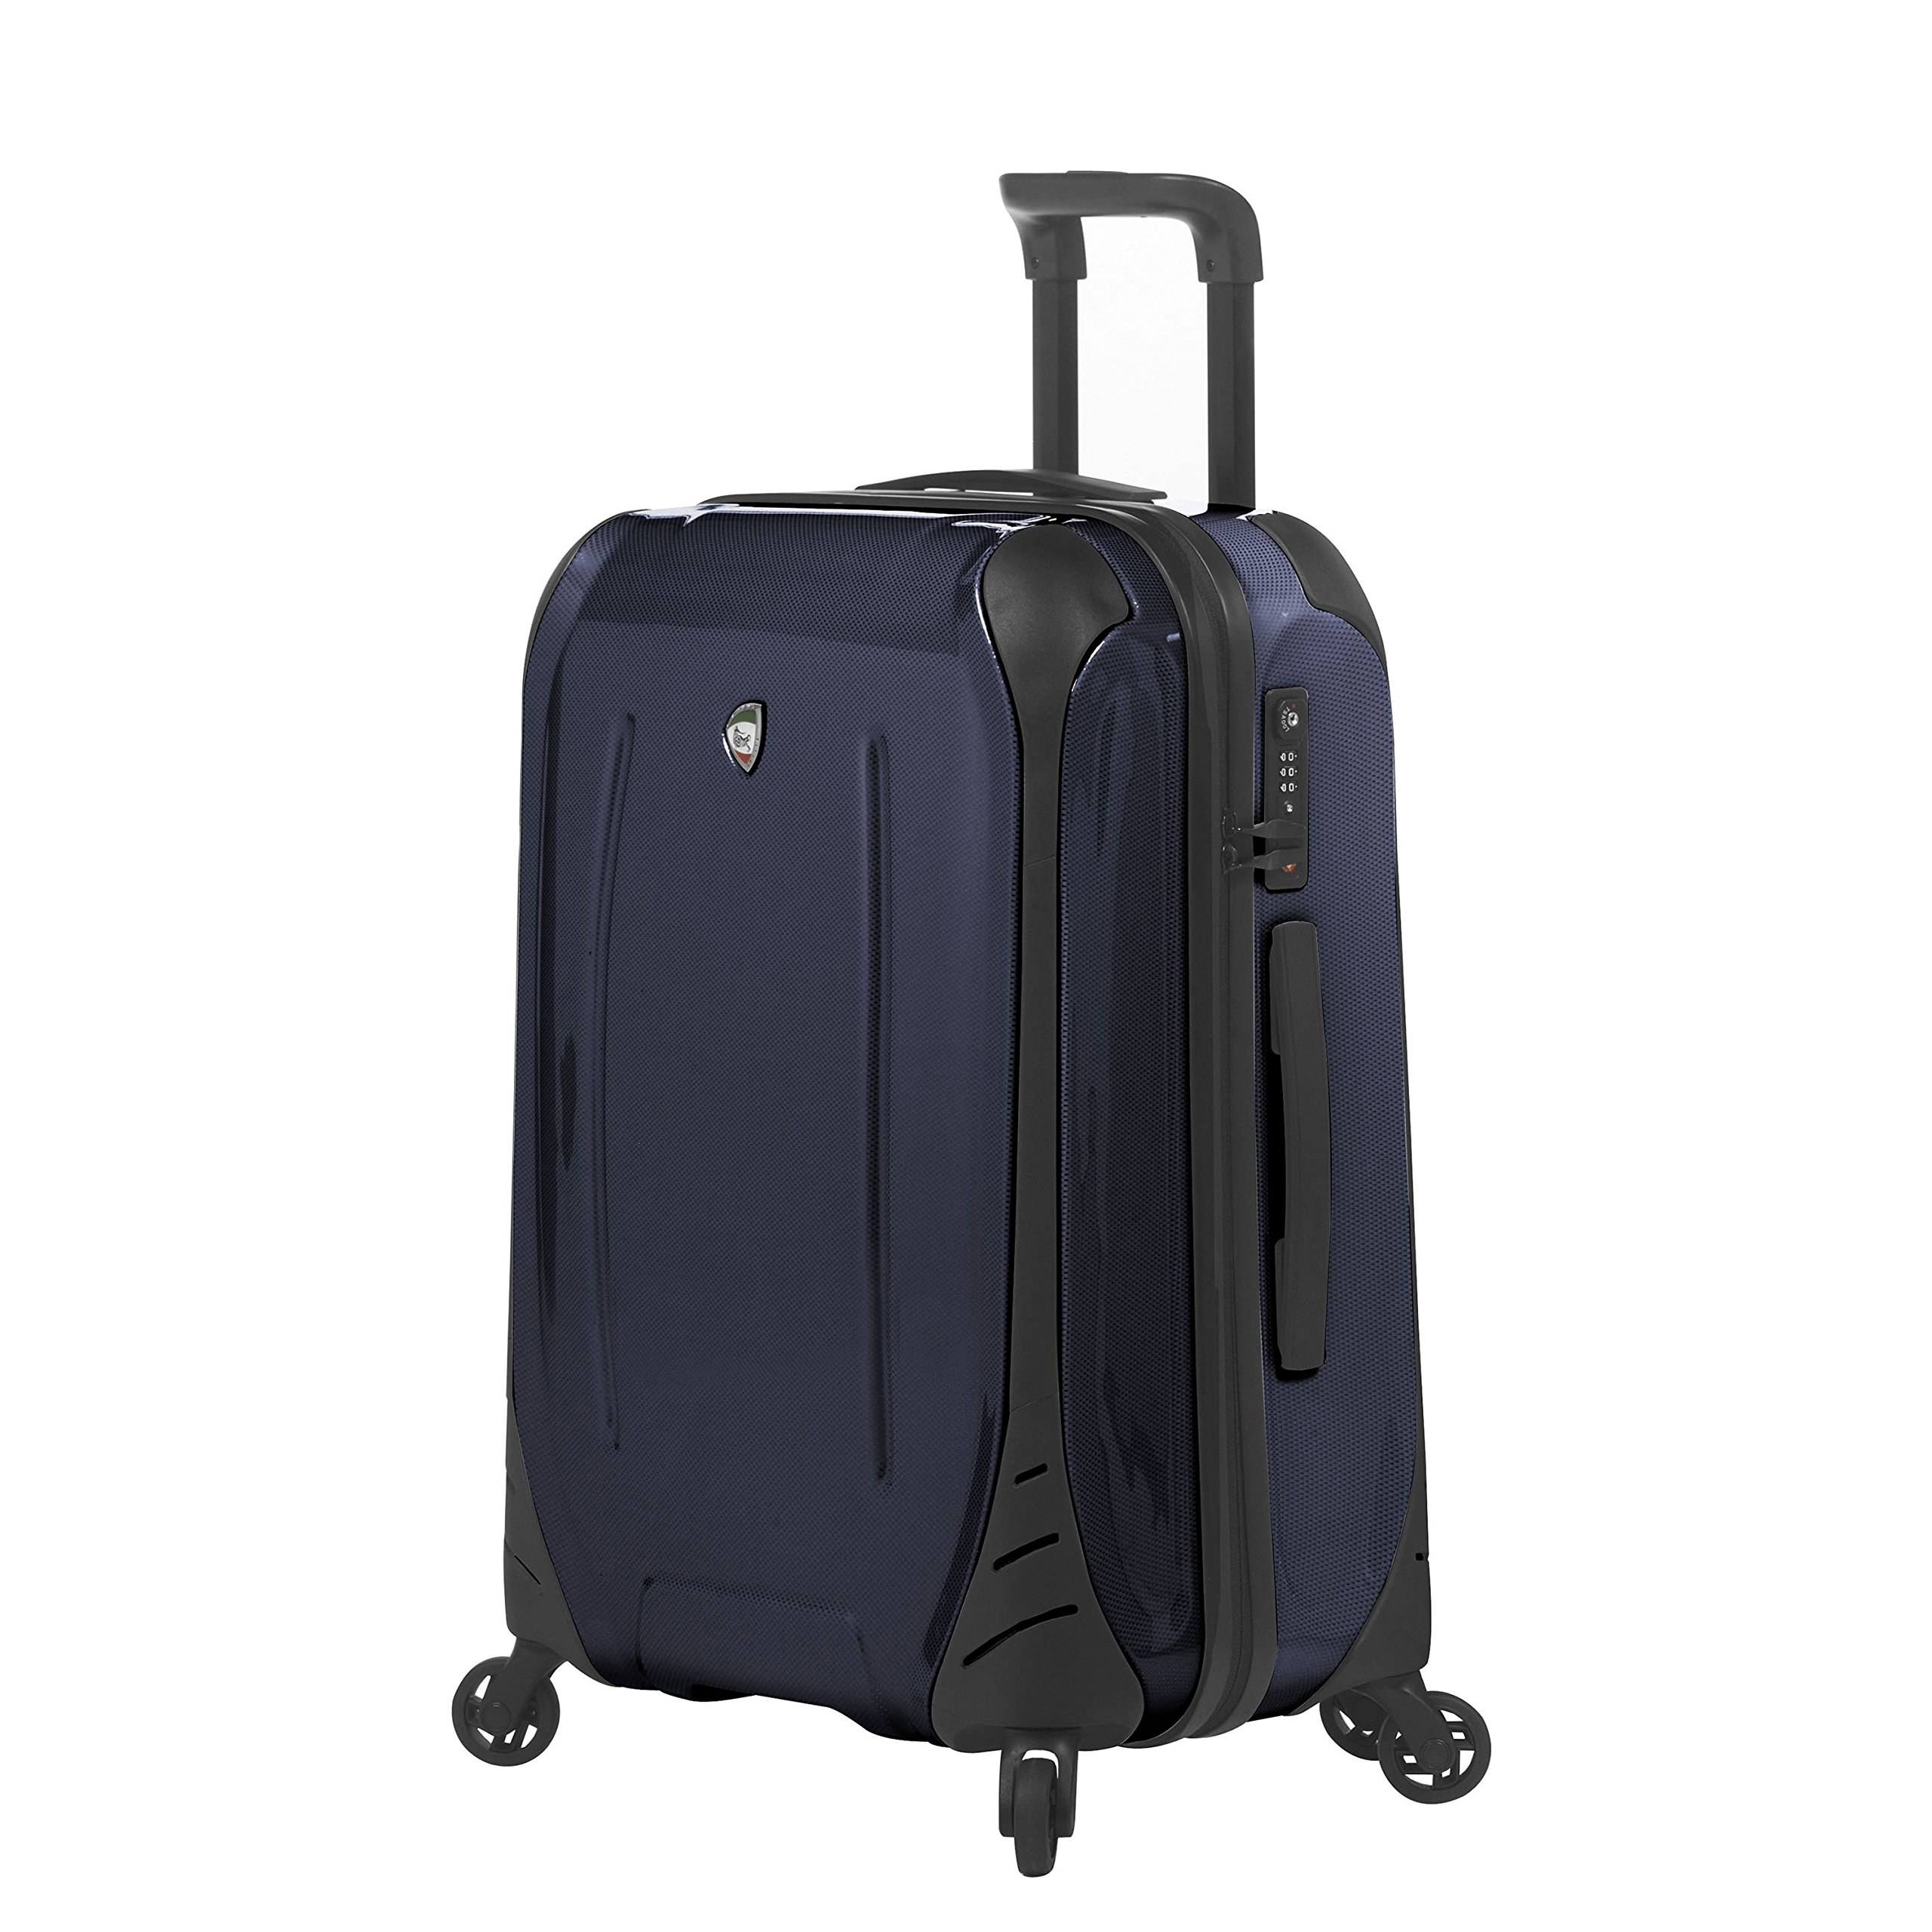 Mia Toro's Fibre Di Carbonio Elite Polished Carbon Fiber Wheeled Luggage (24-Inch, Blue)